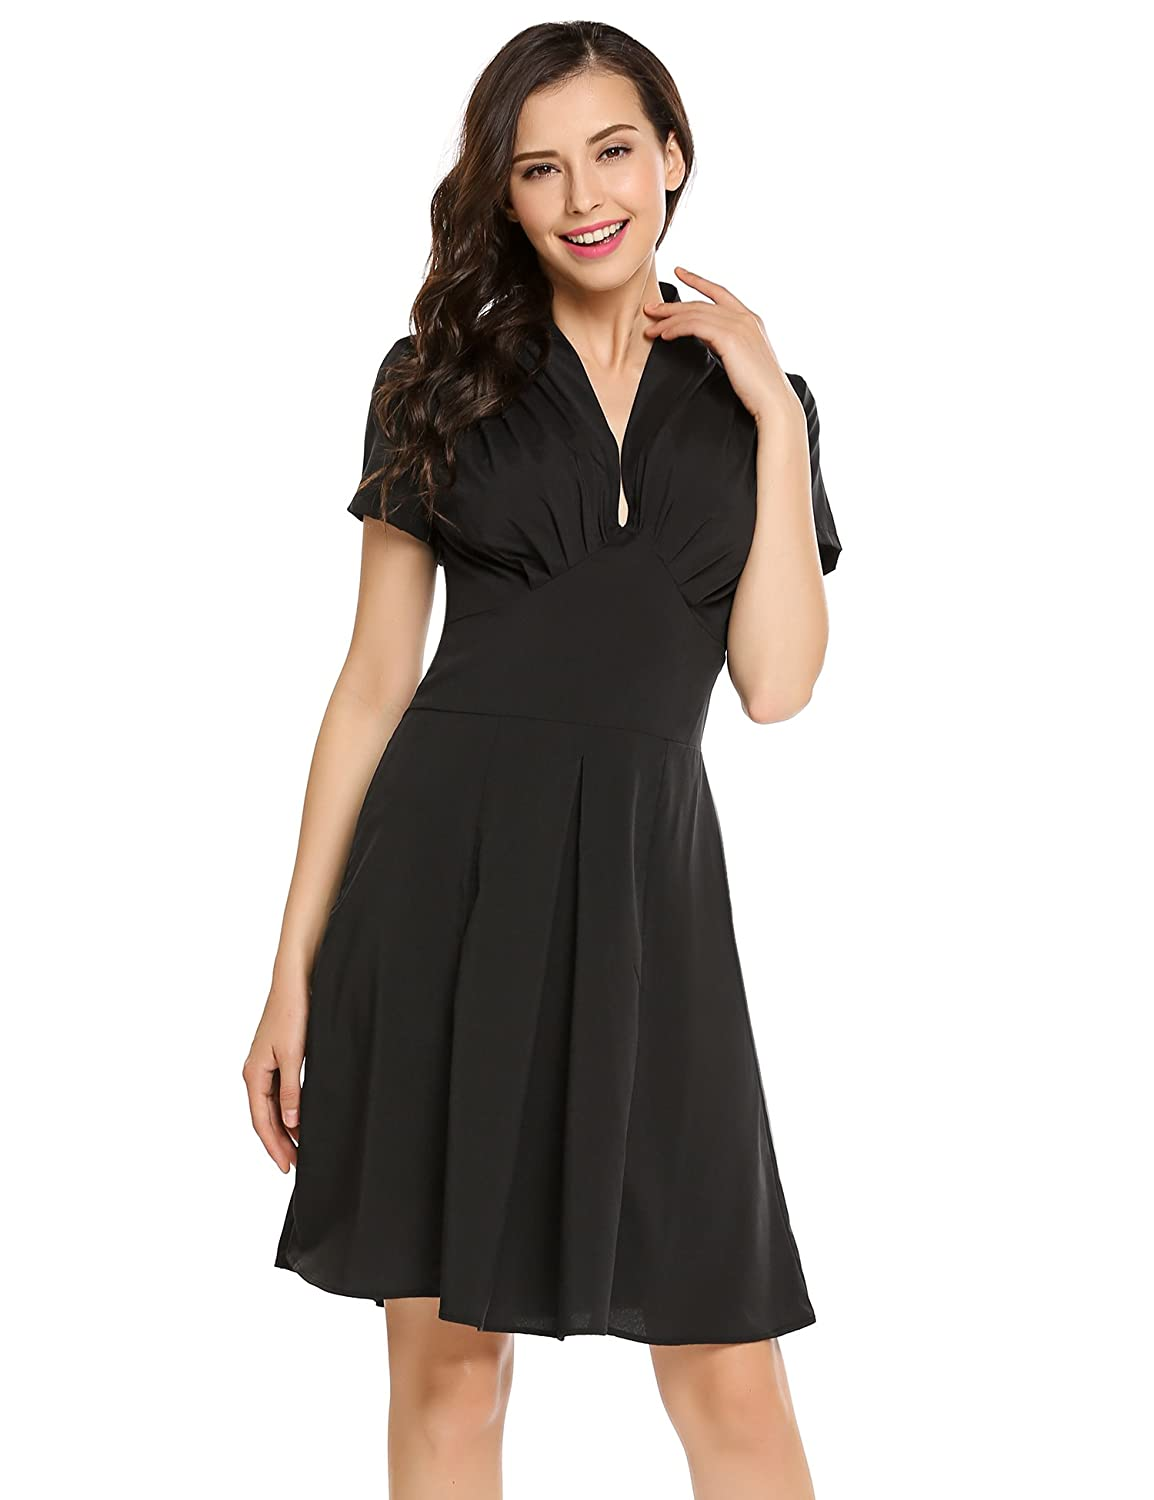 1572492a9a6 Finejo Women s V-Neck Short Sleeve Ruched Waist Fit and Flare Wrap Dress at  Amazon Women s Clothing store